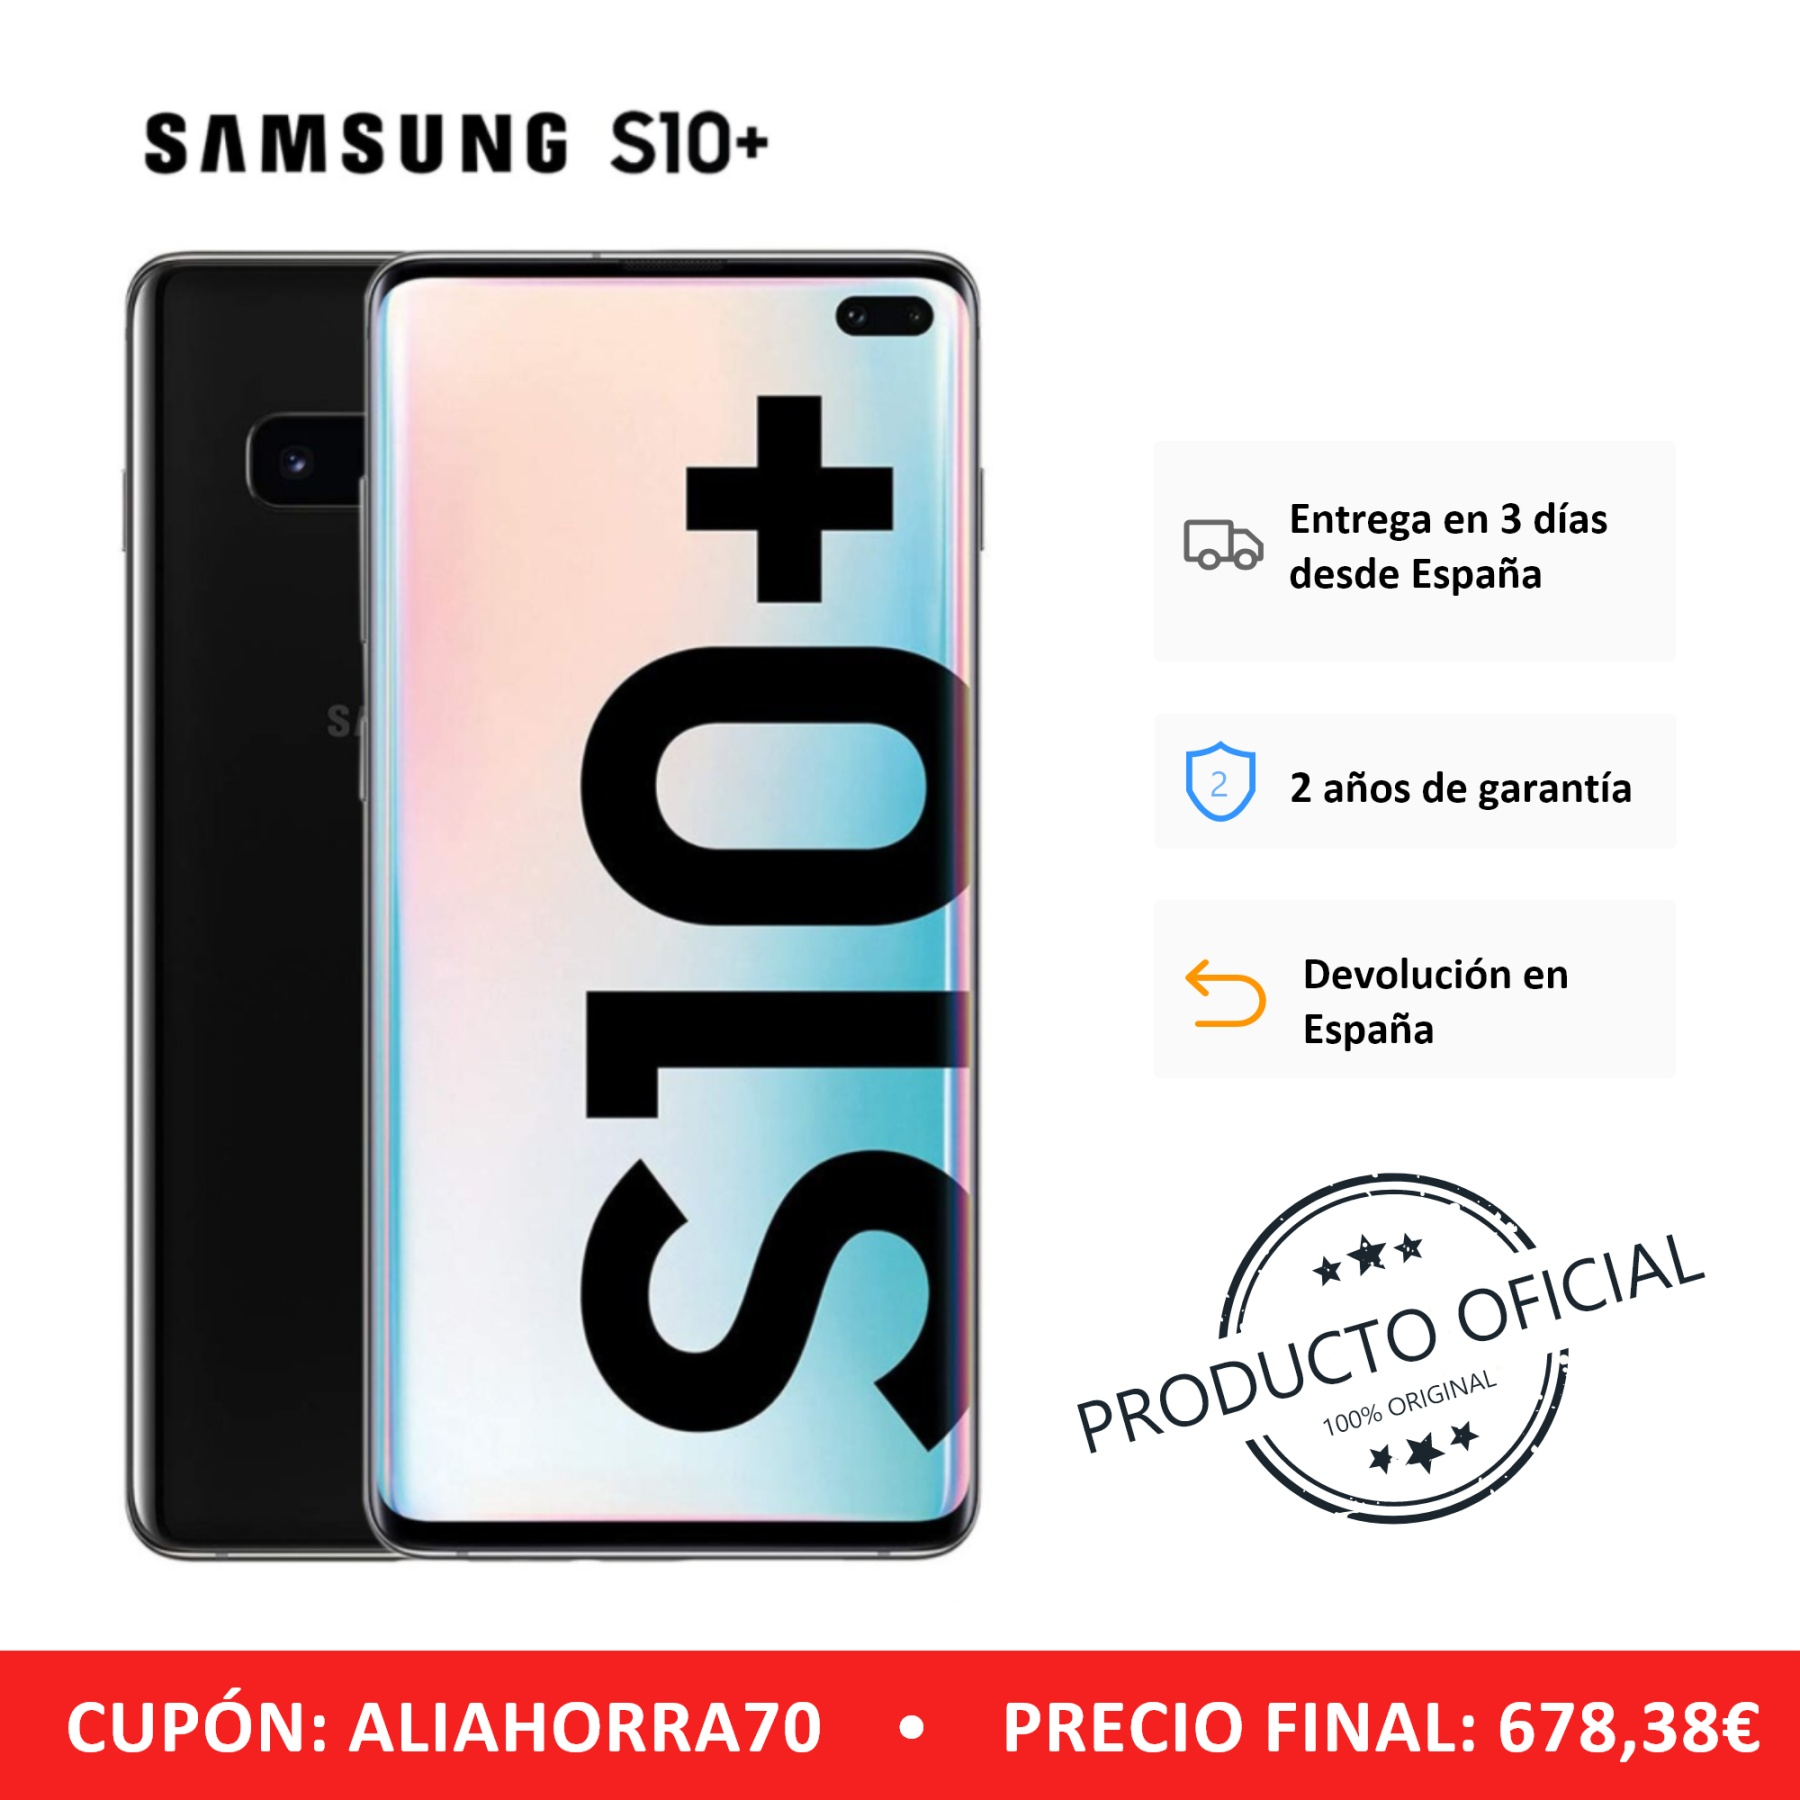 Samsung Galaxy S10 +, Band LTE/WiFi, Dual SIM, Black Color (Black), 12 8GB Memoria Interna, 8GB RAM, Screen D